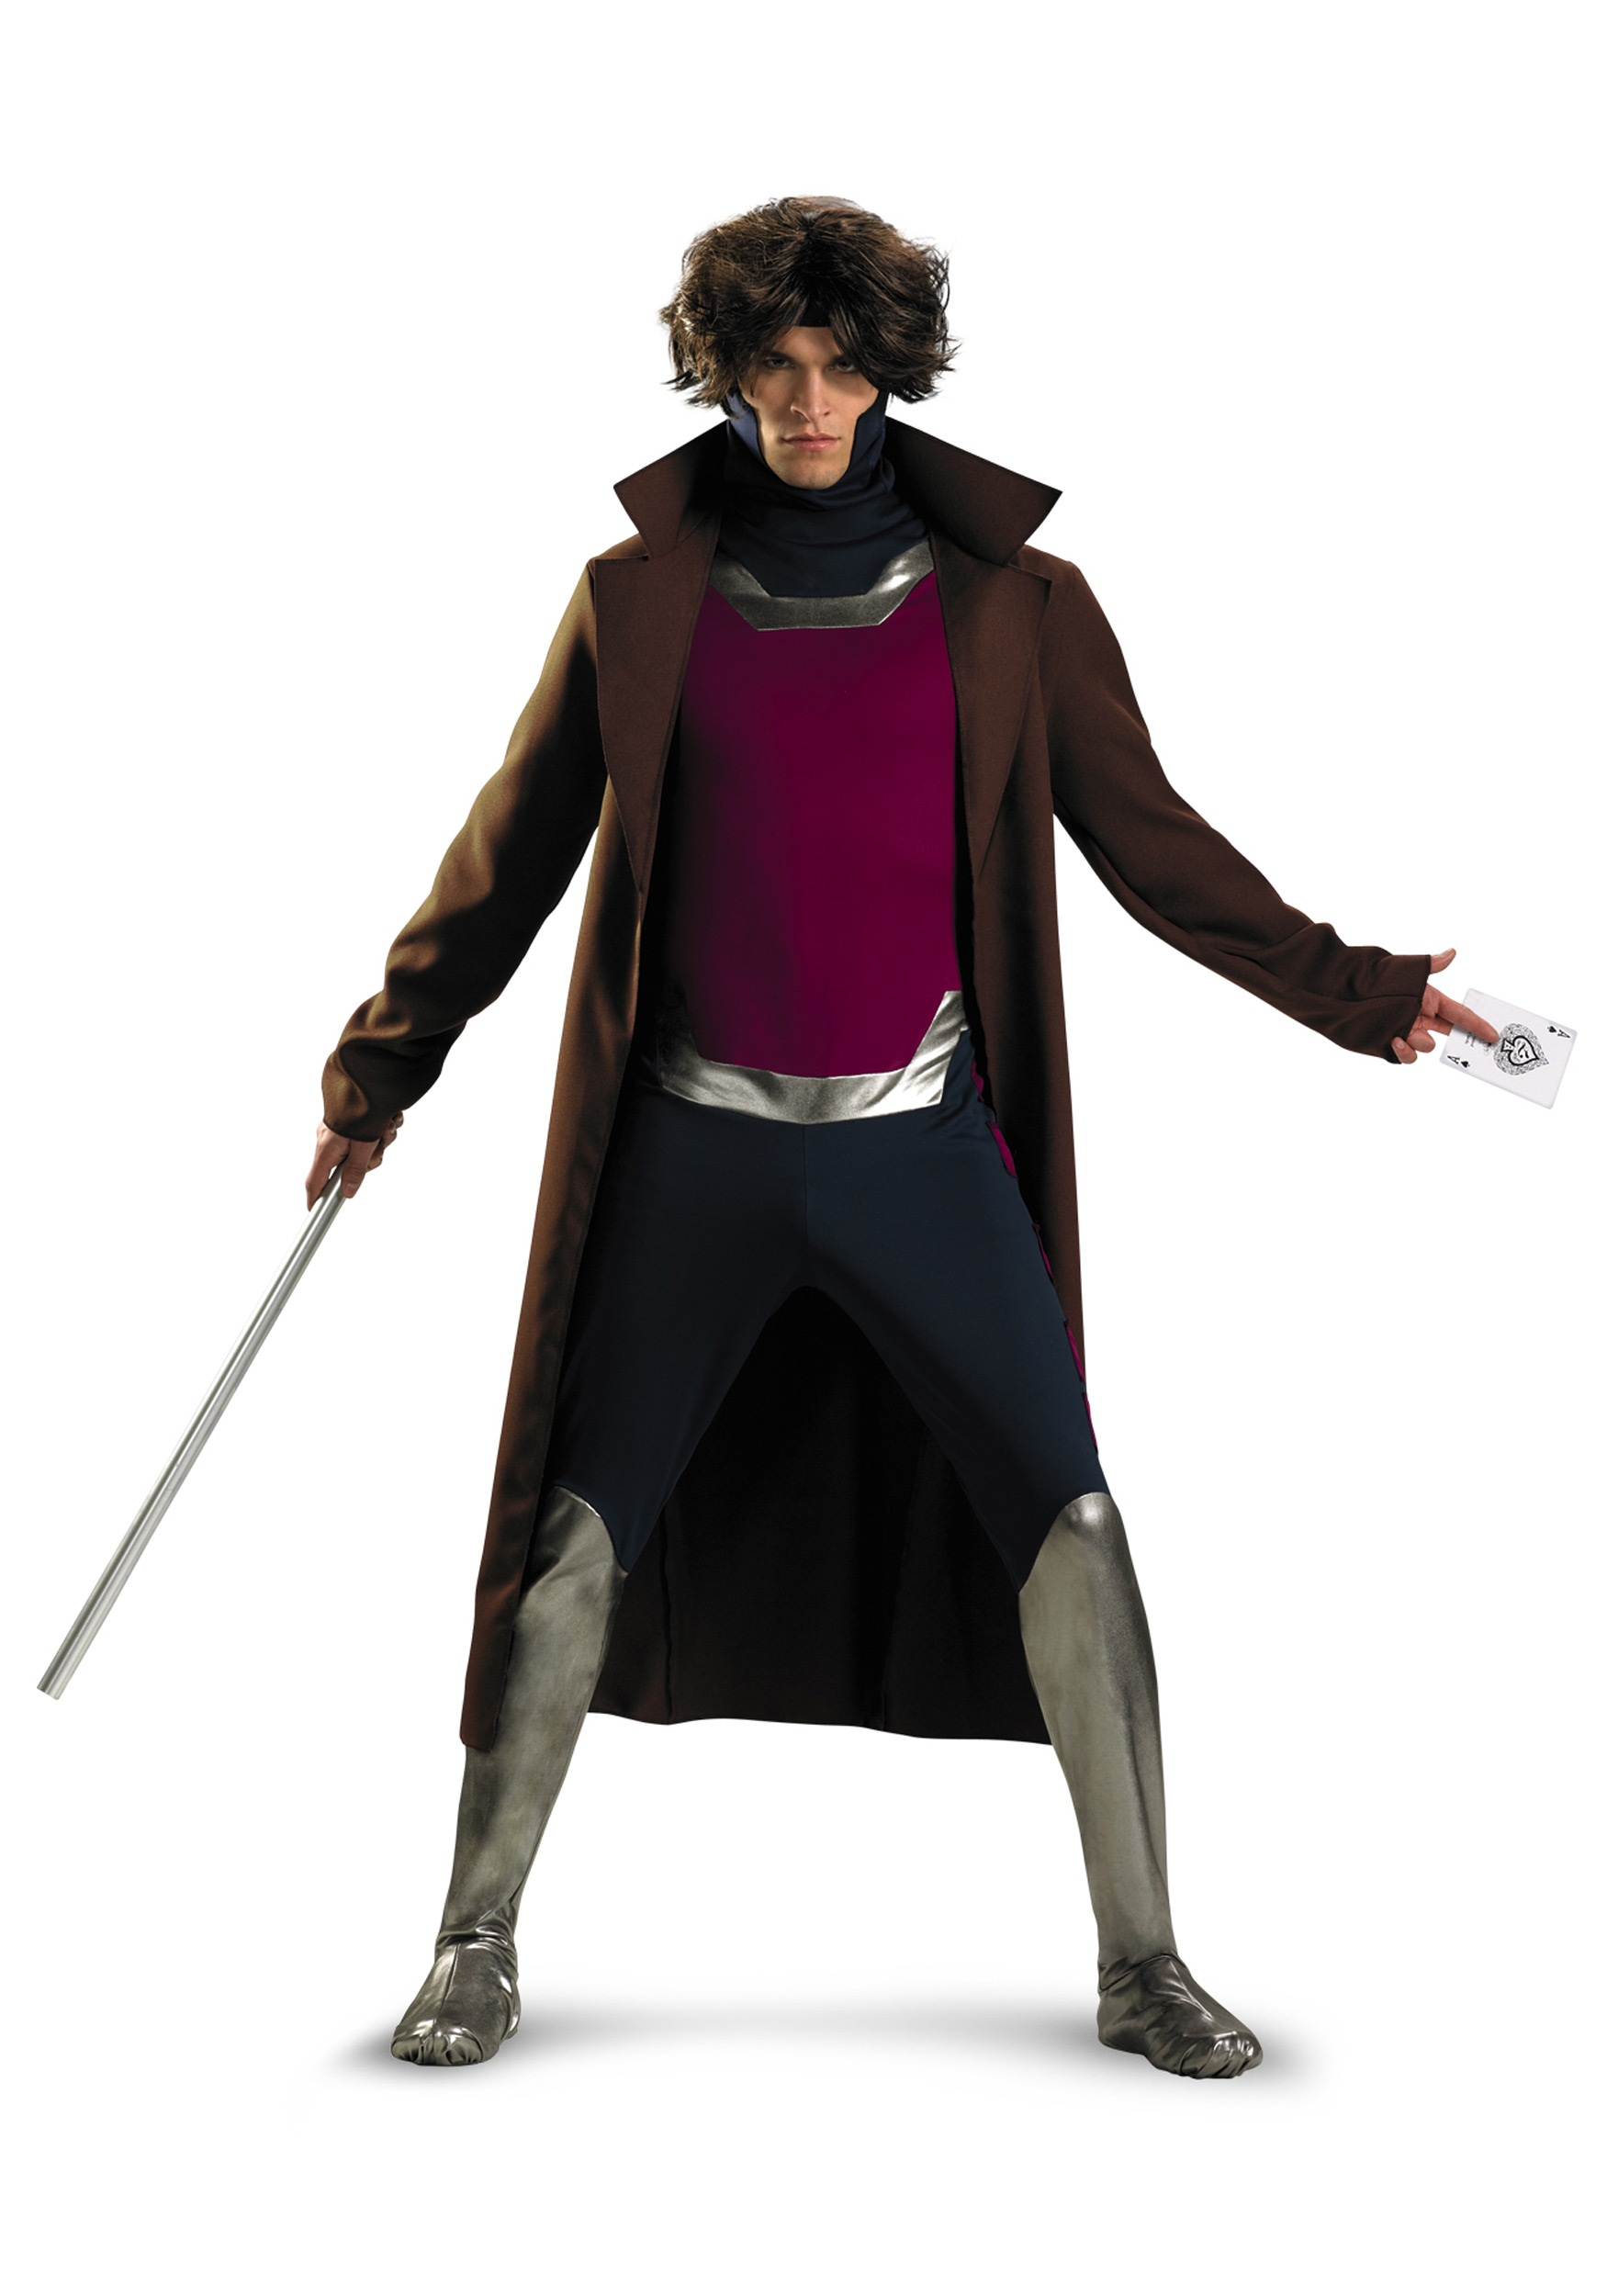 Plus Size X-Men Gambit Costume